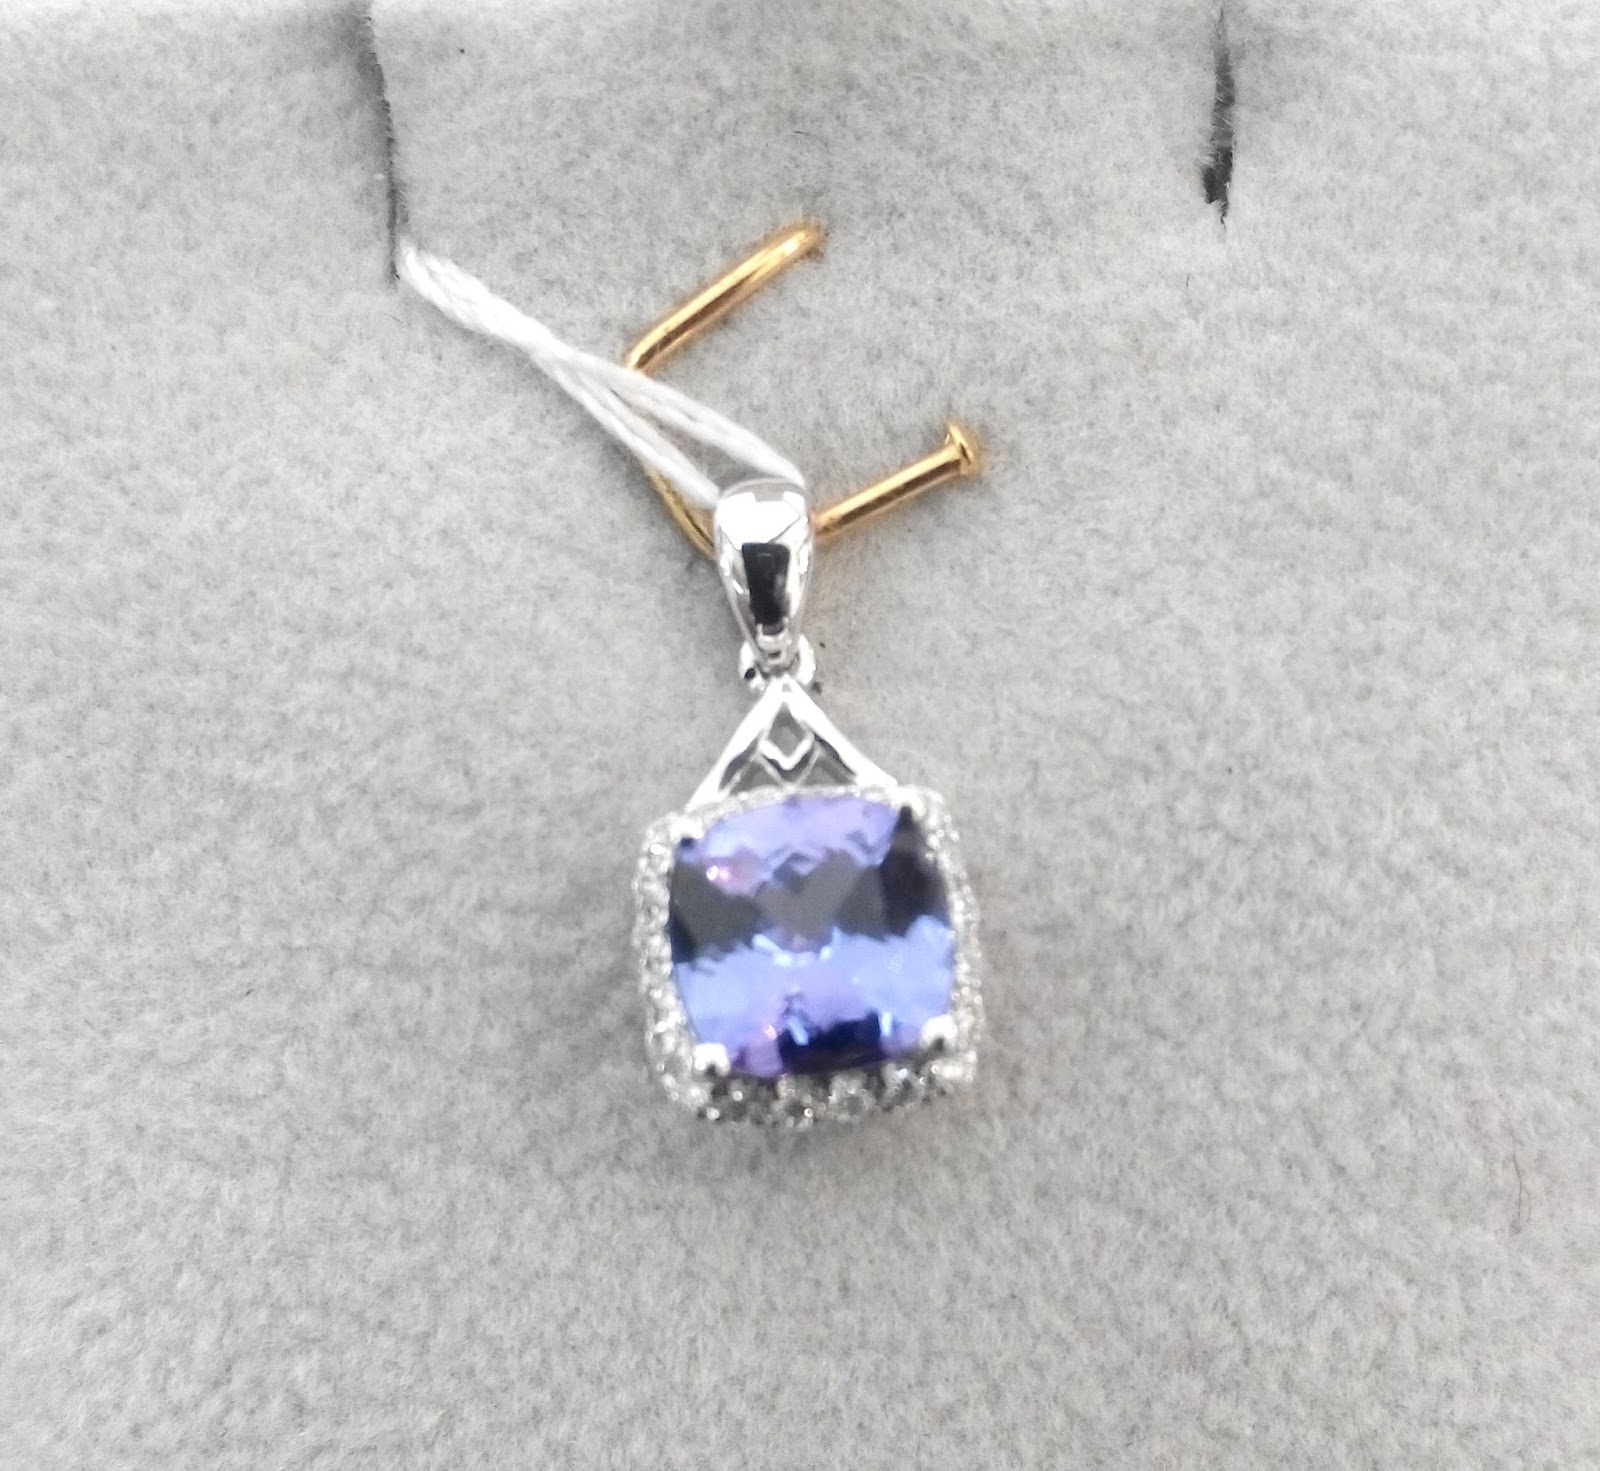 aaa pendant necklace my natural trillion block products jewelry and for natura certified cts investment loose affair cornflower engagement cut d rare ring triangle bridal blue more tanzanite grade